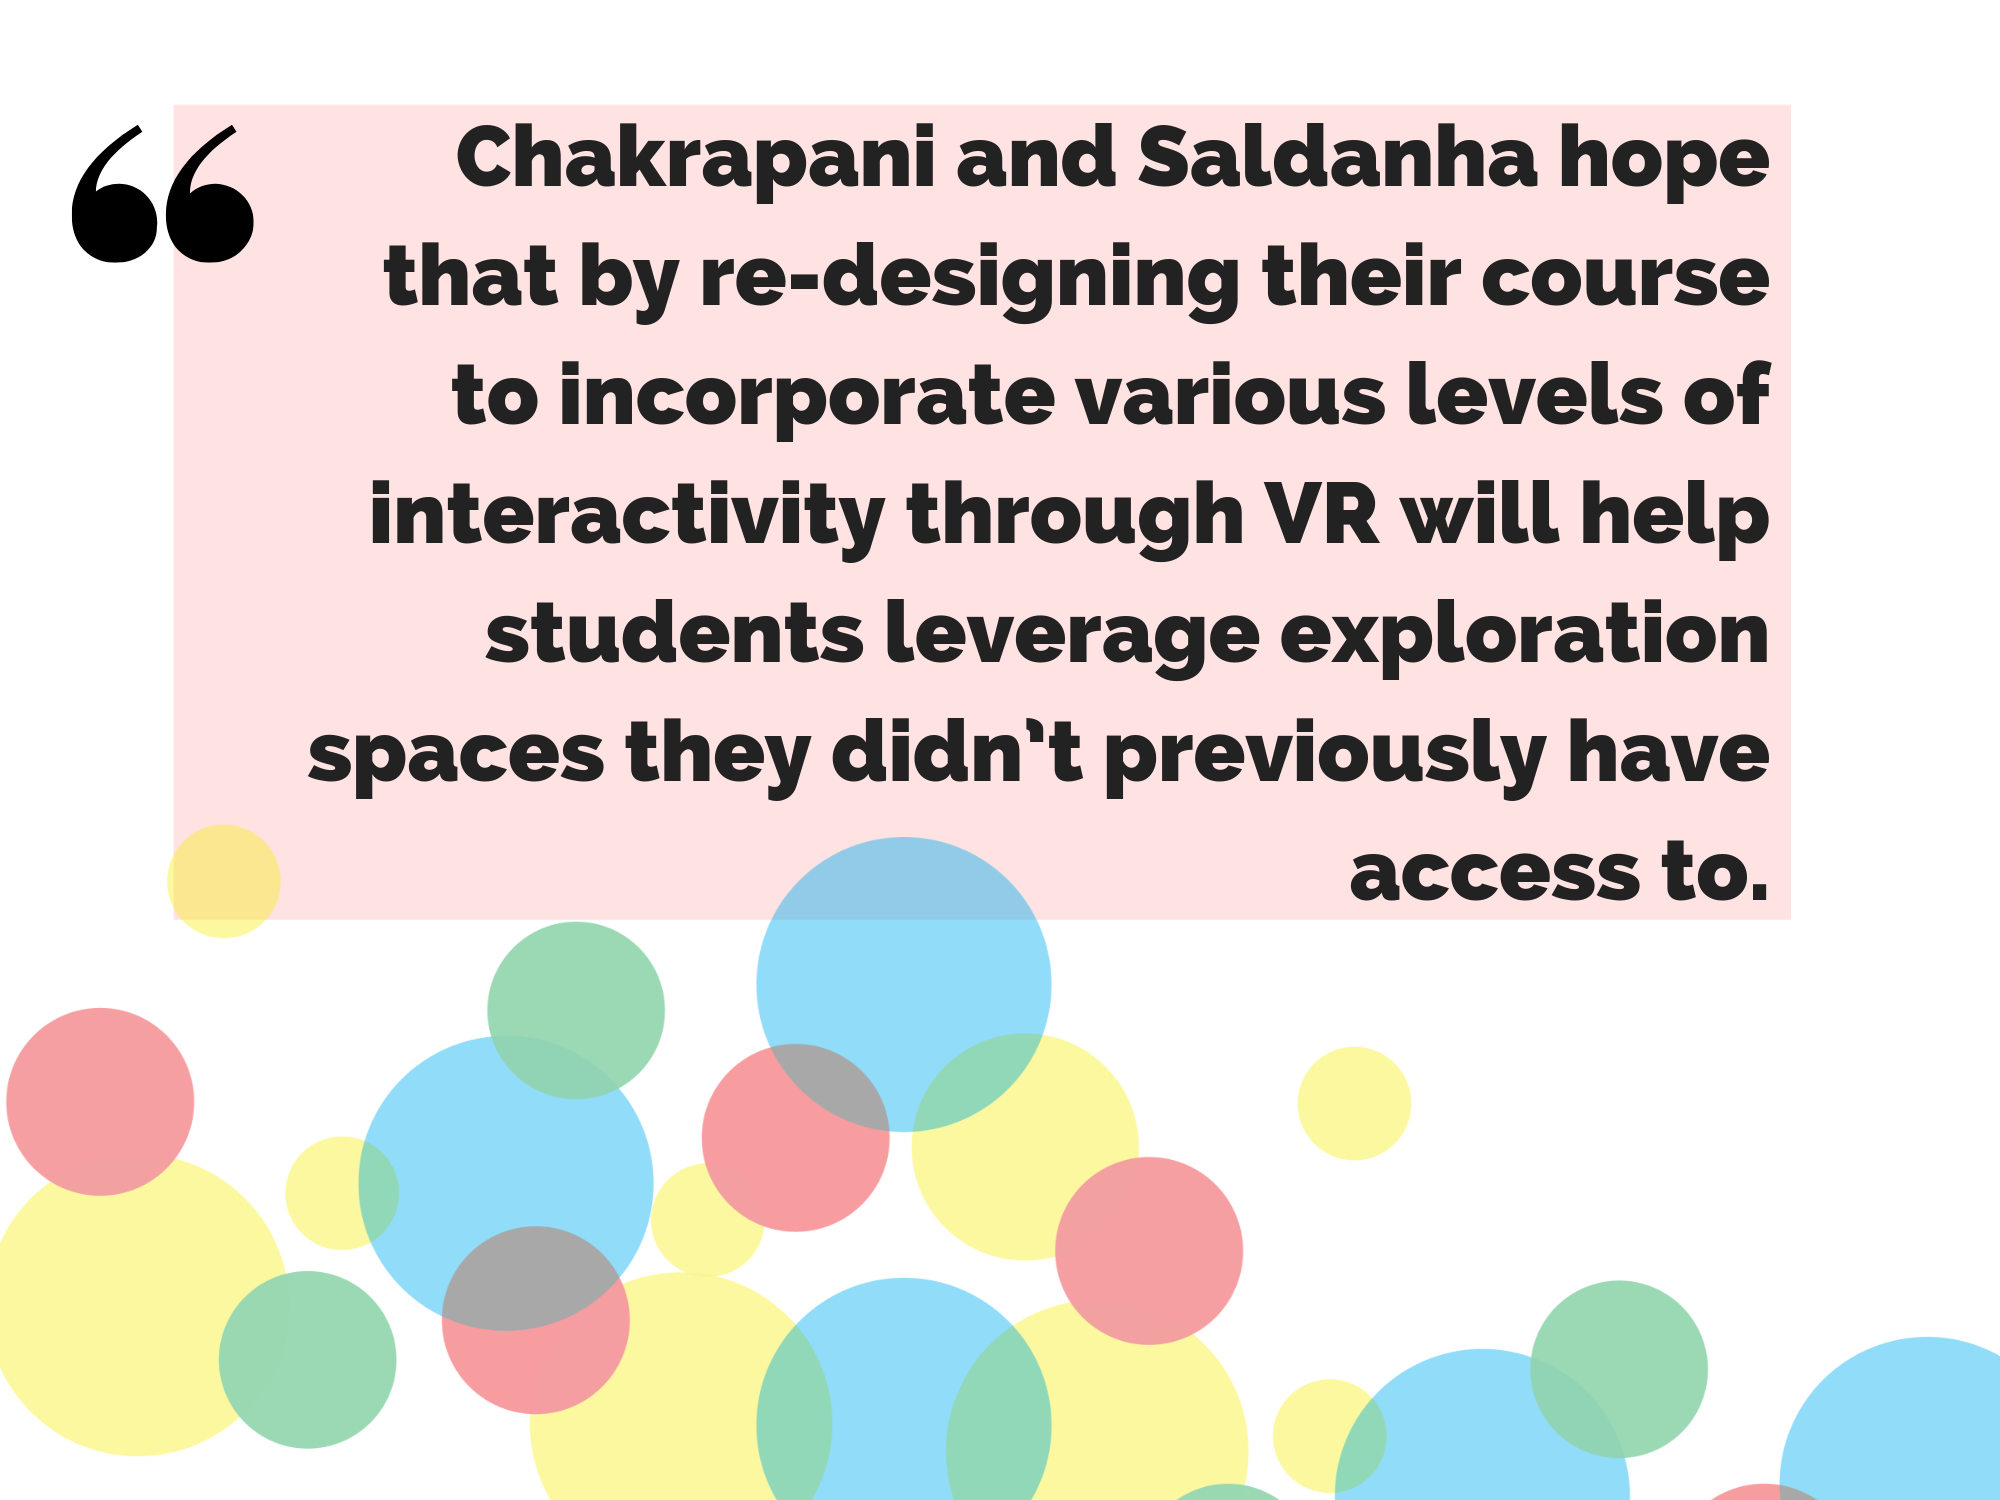 """Chakrapani and Saldanha hope that by re-designing their course to incorporate various levels of activity through VR will help students leverage exploration spaces they didn't previously have access to"